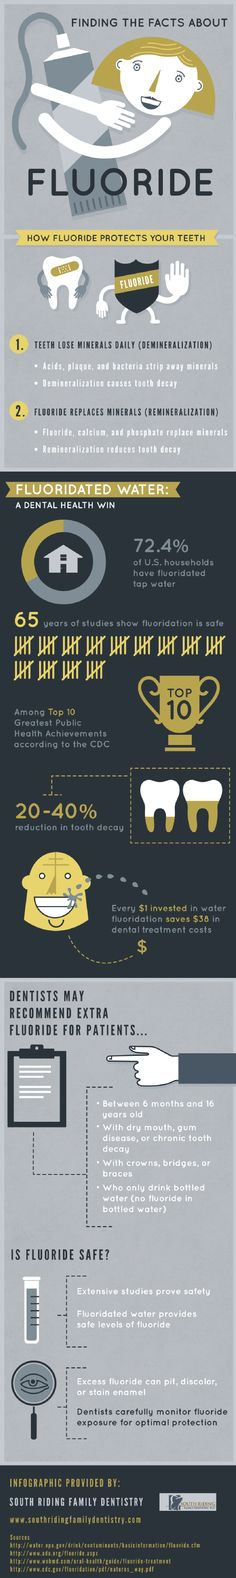 Facts About Fluoride #Infographic